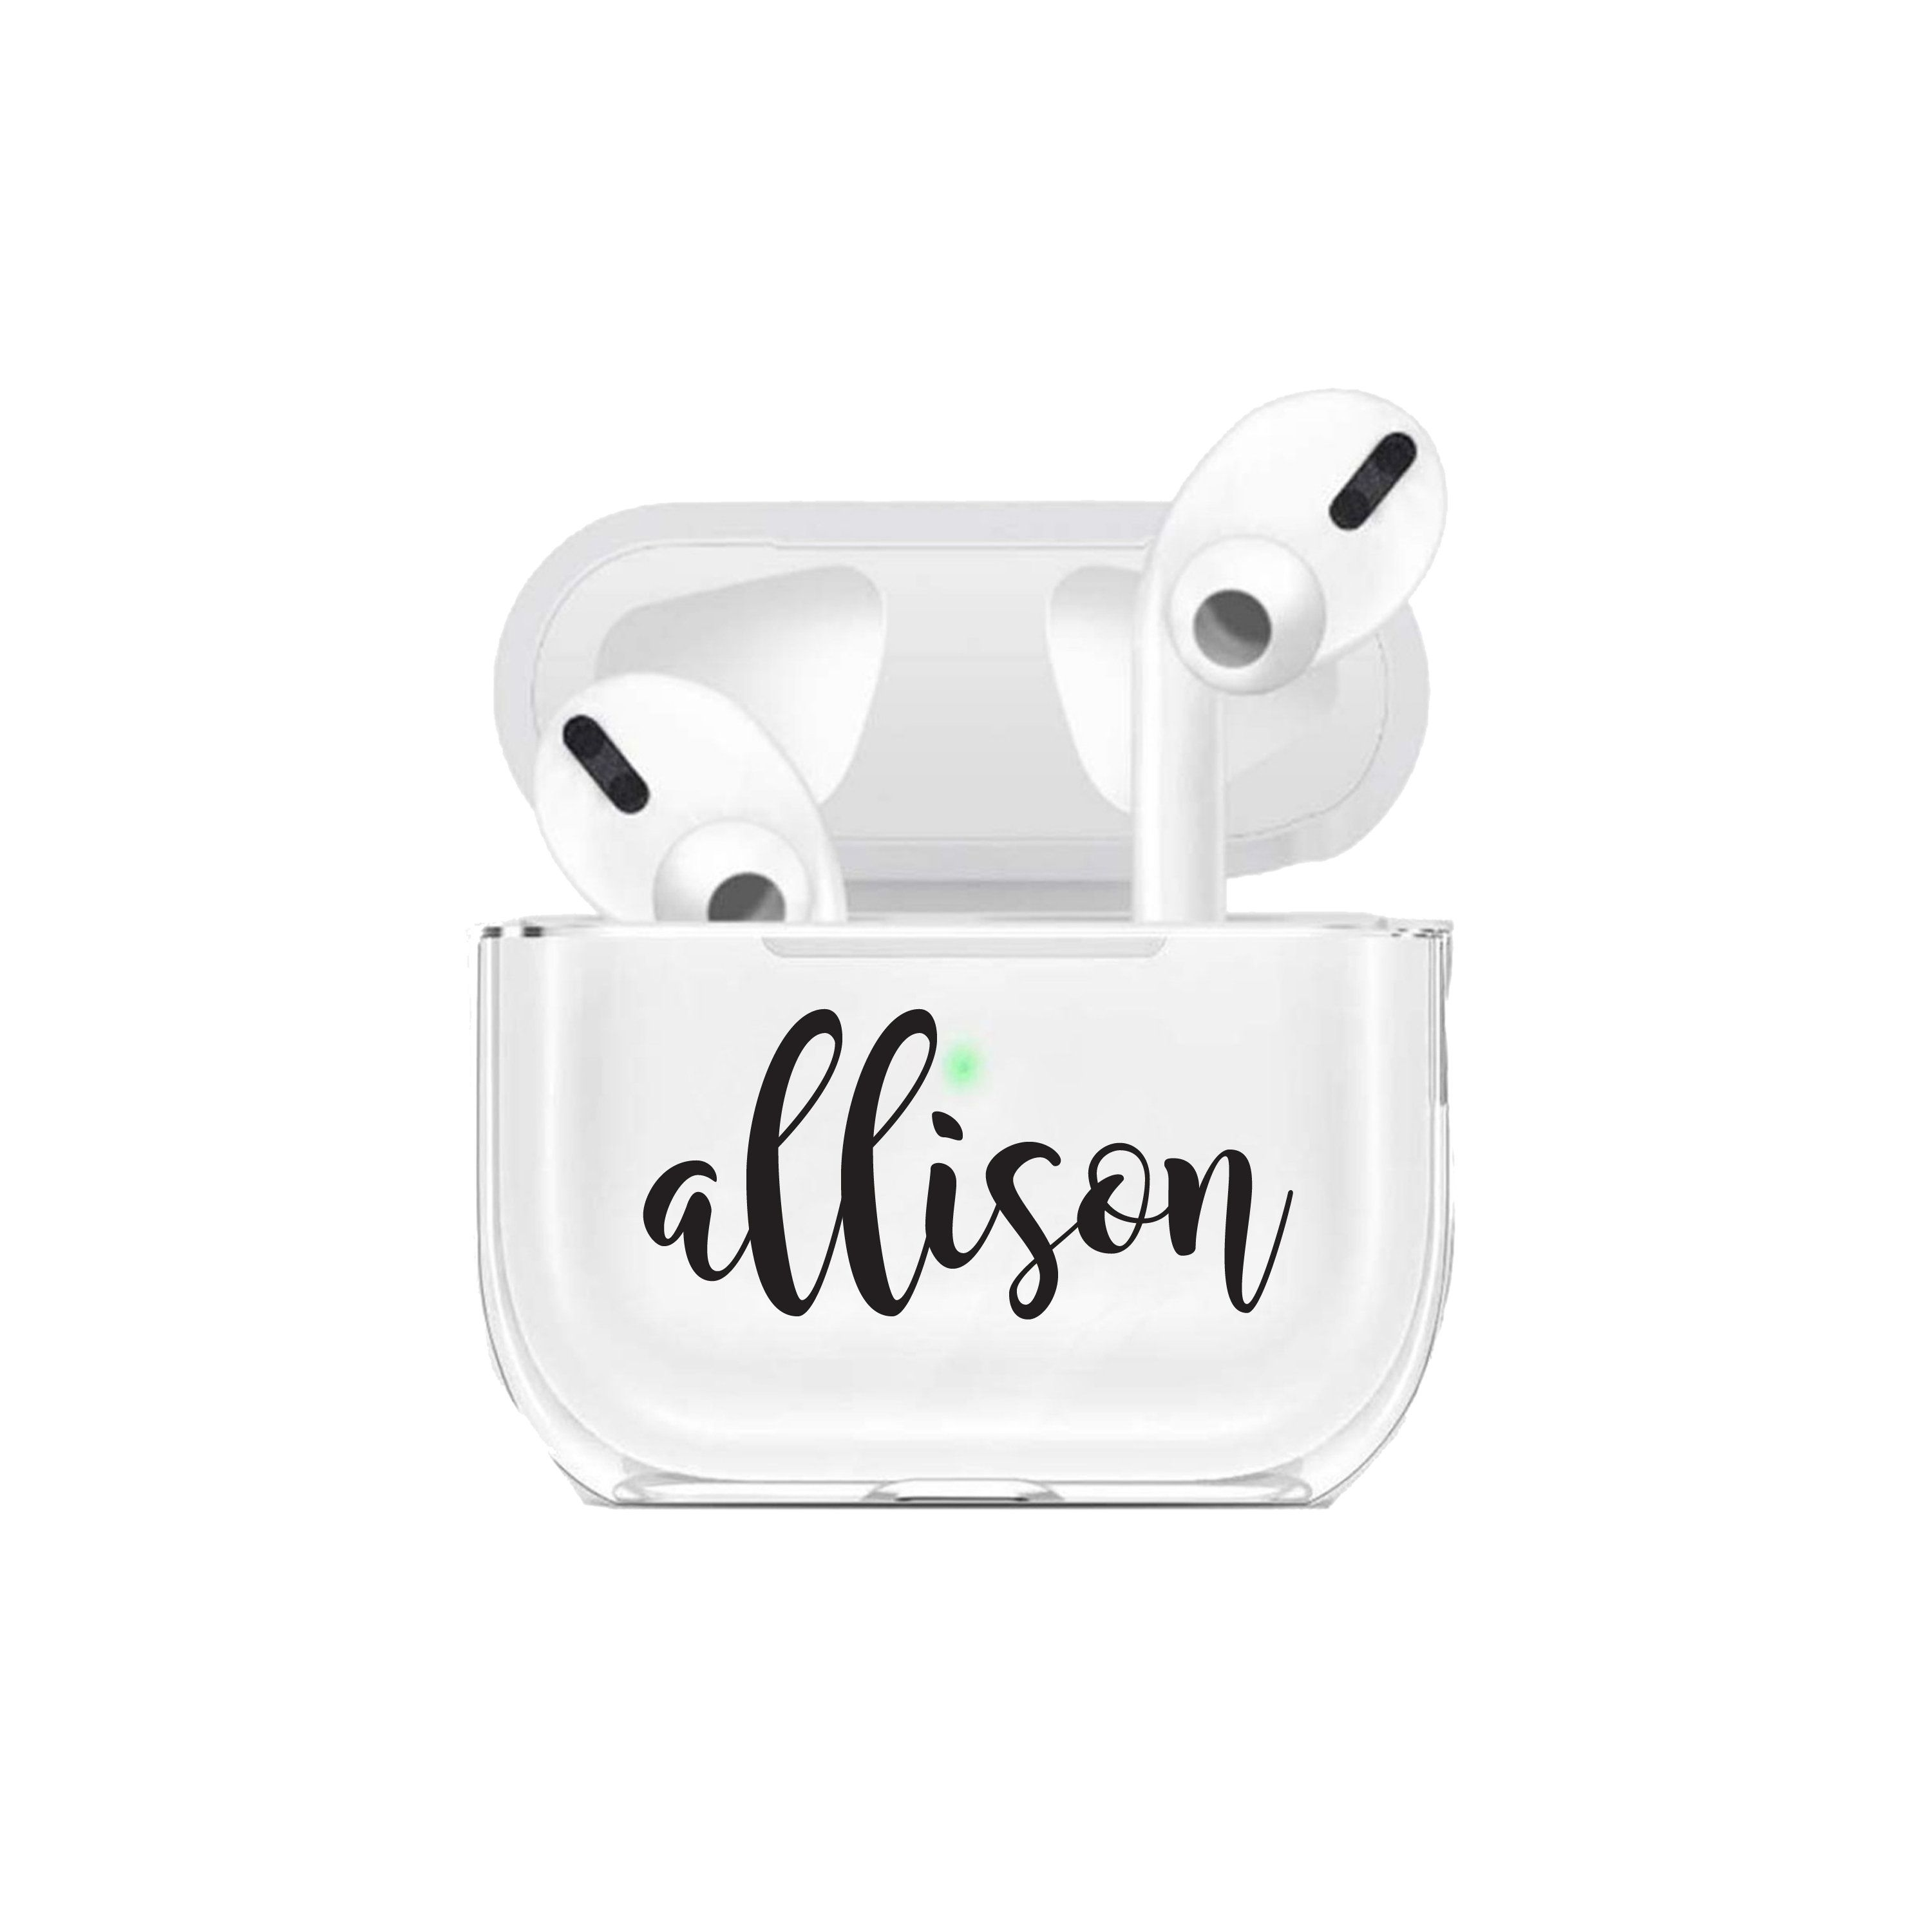 Airpods Pro Case Customized Inital Airpods Pro Case Personalized Gift Air Pod Pro Case Clear Airpod Pro Case Personalize Name Custom Airpods Air Pods Cool Gadgets On Amazon Case